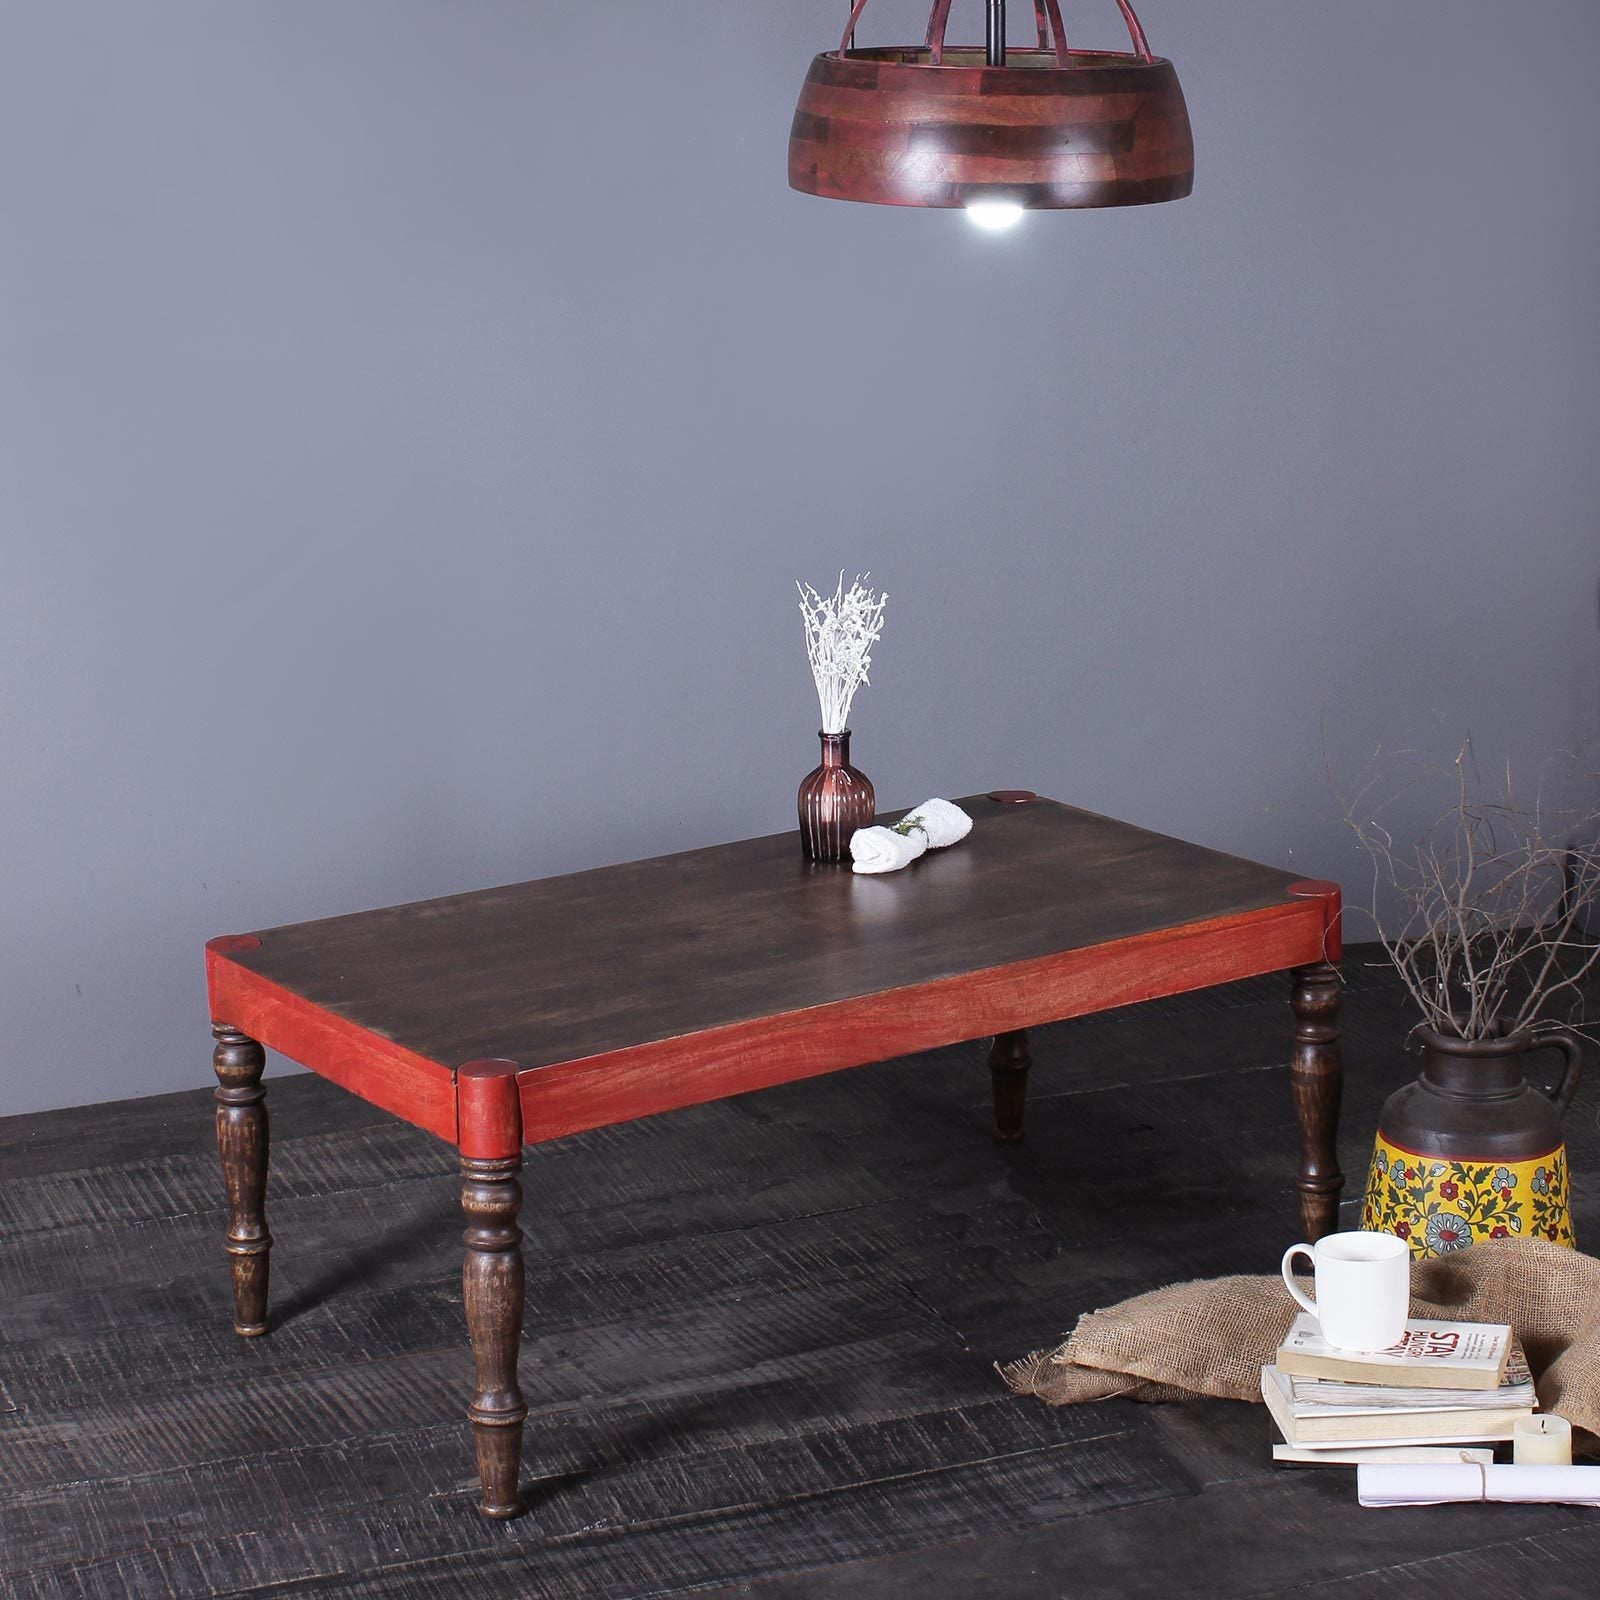 Esla Solid Wood Coffee Table in Vintage Red